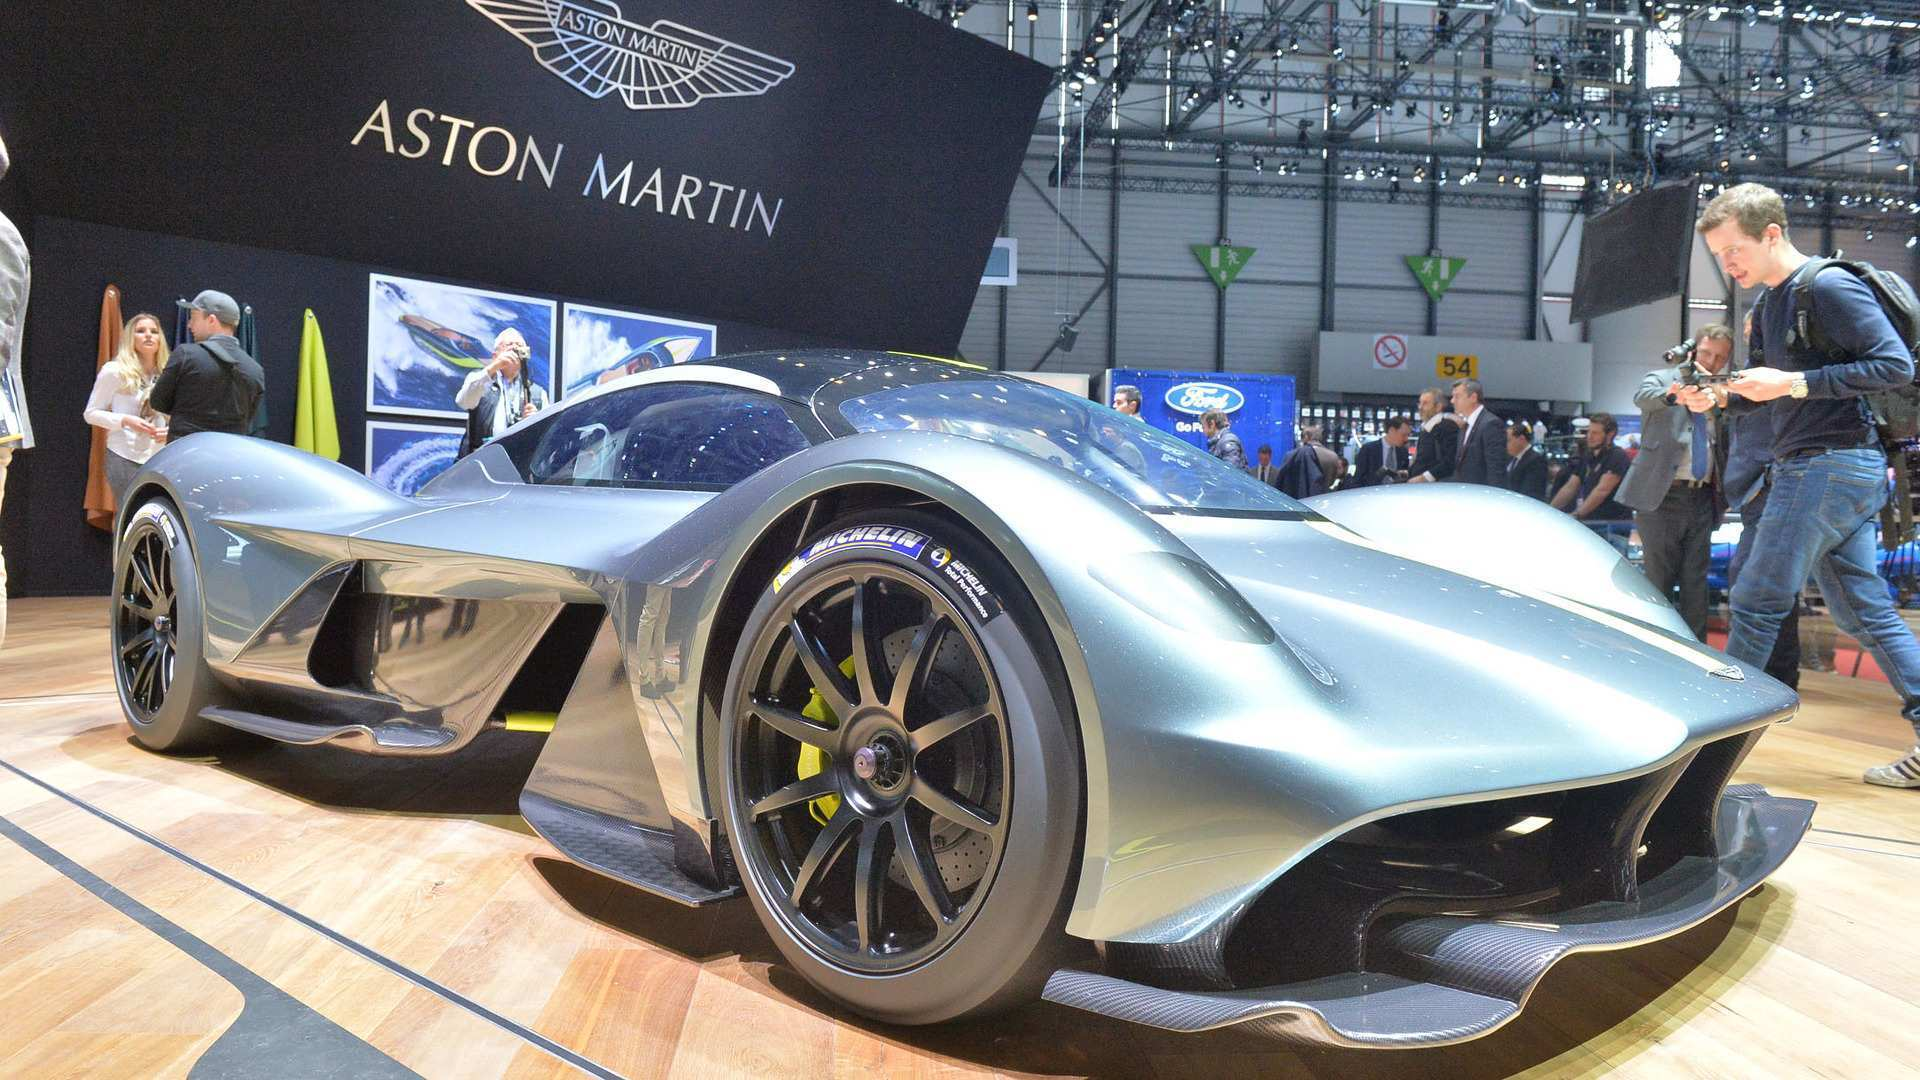 77 All New 2019 Aston Martin Valkyrie Review with 2019 Aston Martin Valkyrie